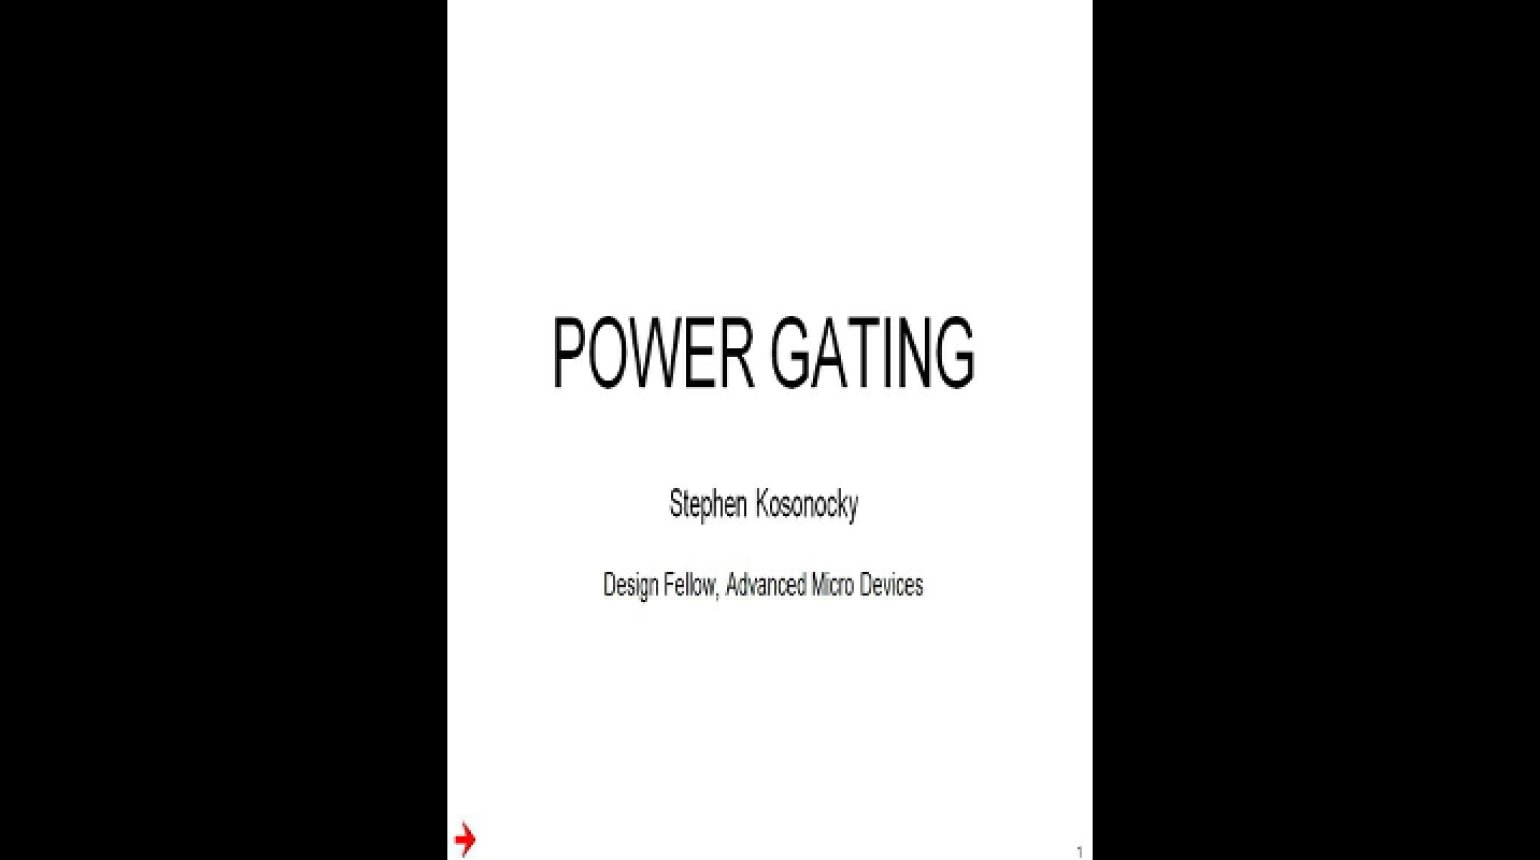 Power Gating Video